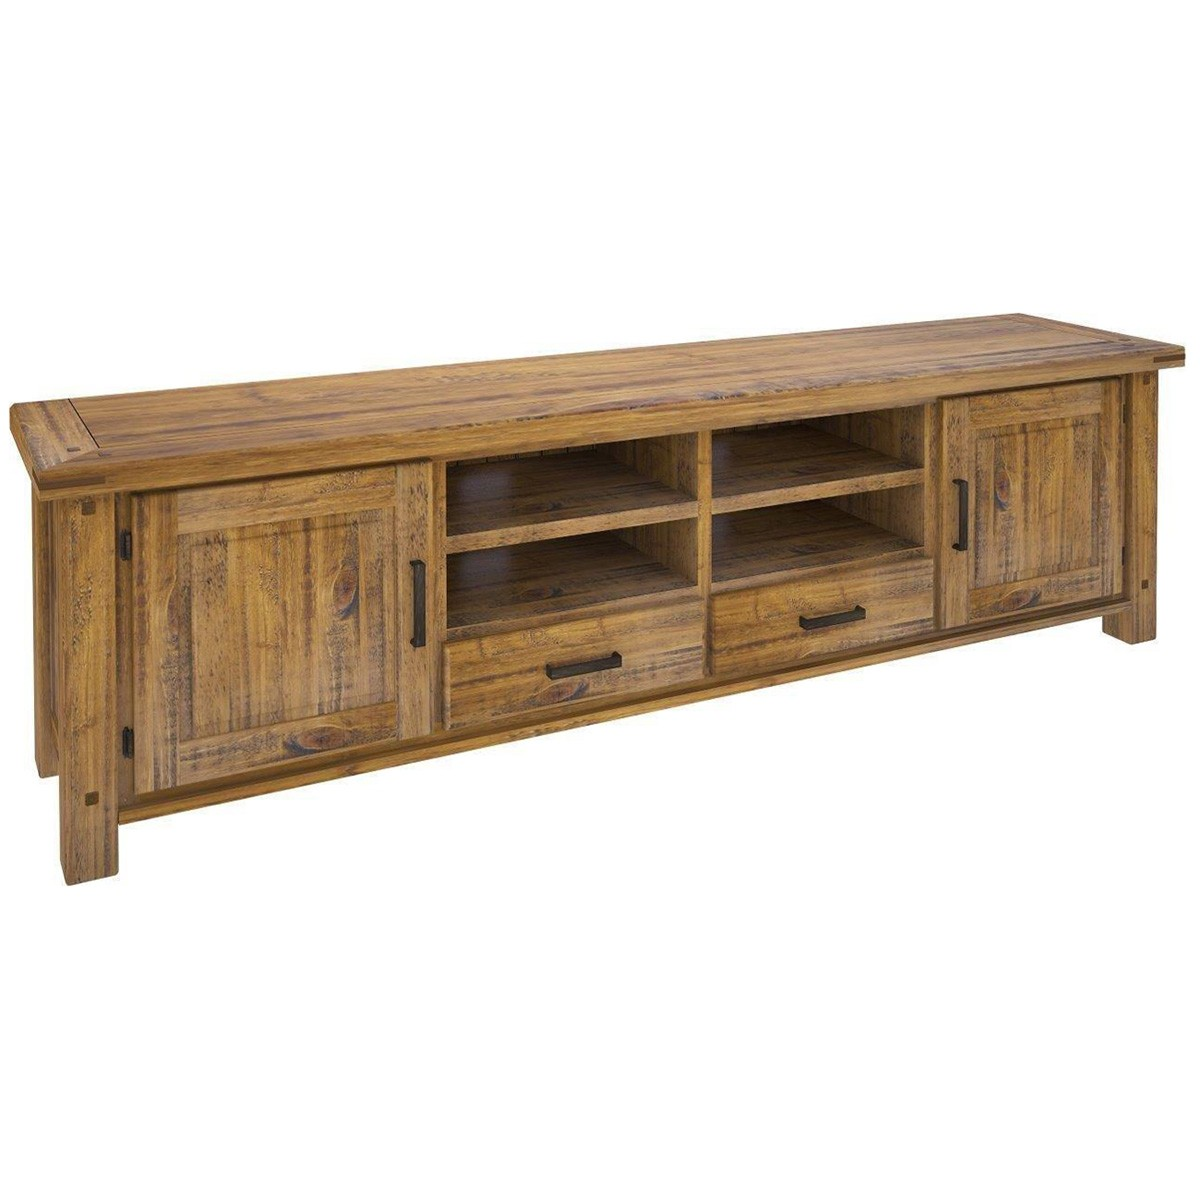 Serafin Rustic Pine Timber 2 Door 2 Drawer TV Unit, 240cm